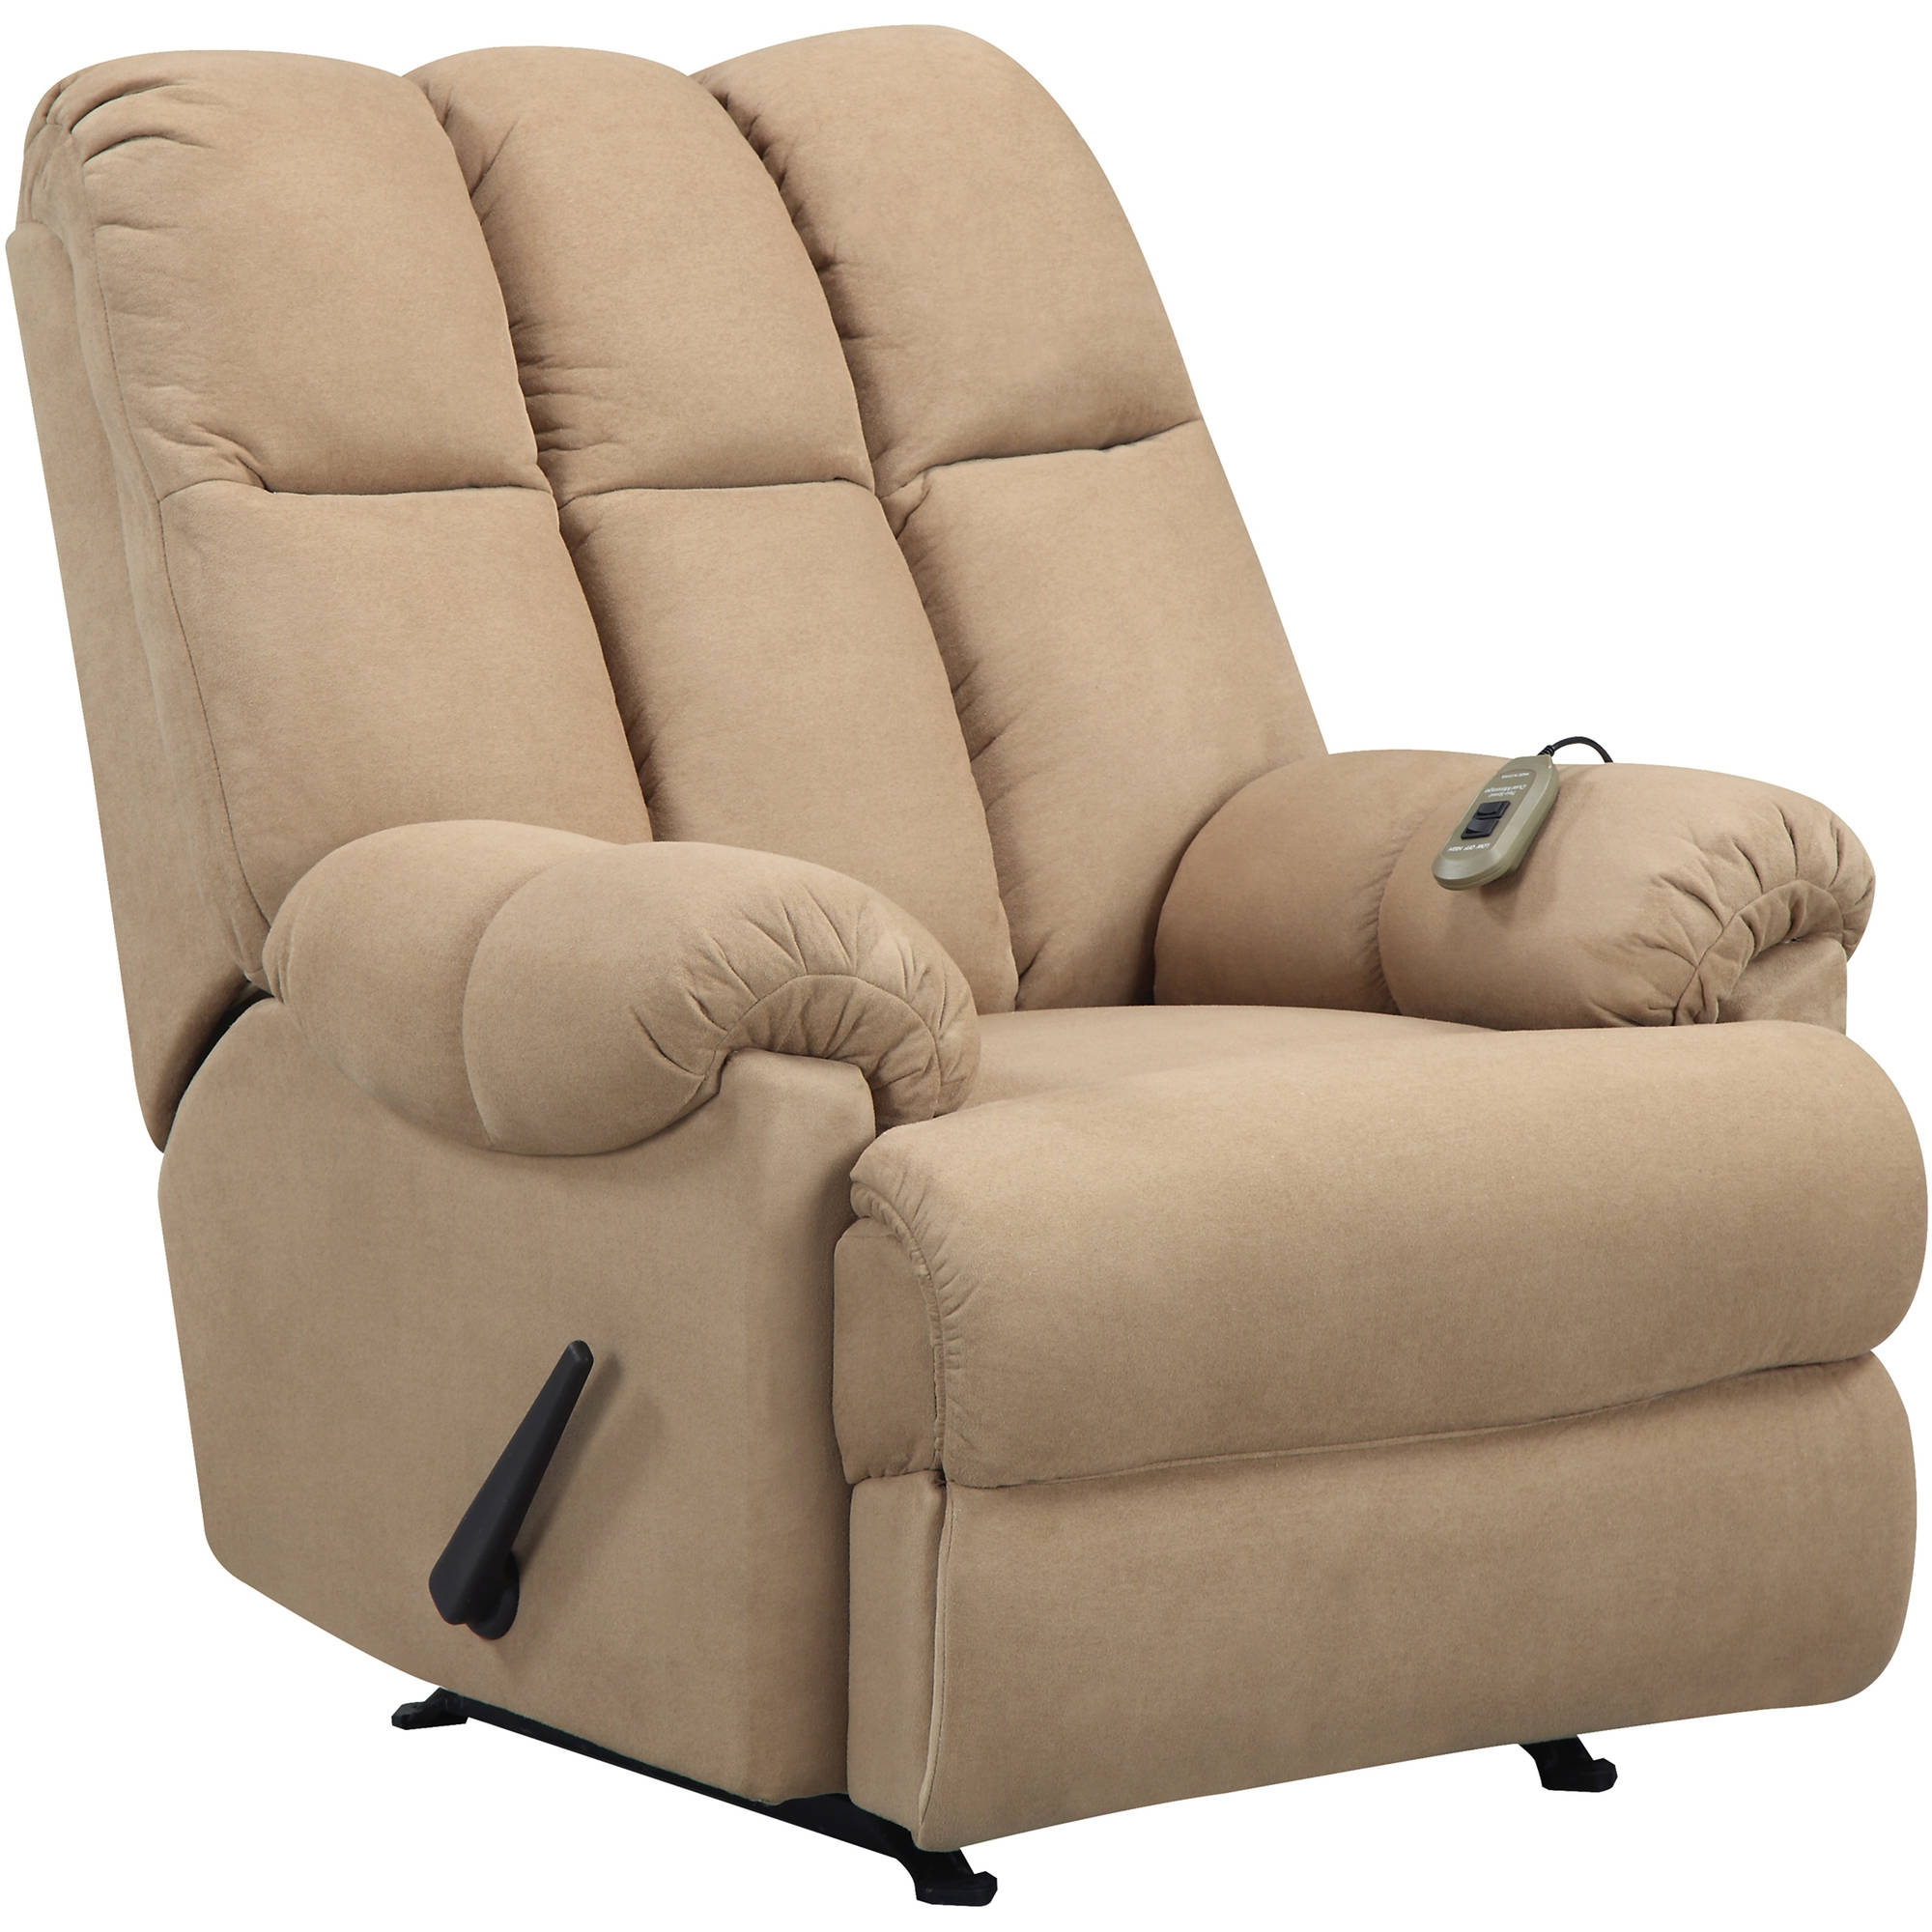 Rocking Sofa Chair Dorel Home Padded Massage Rocker Recliner With Regard To Rocking Sofa Chairs (Image 8 of 15)